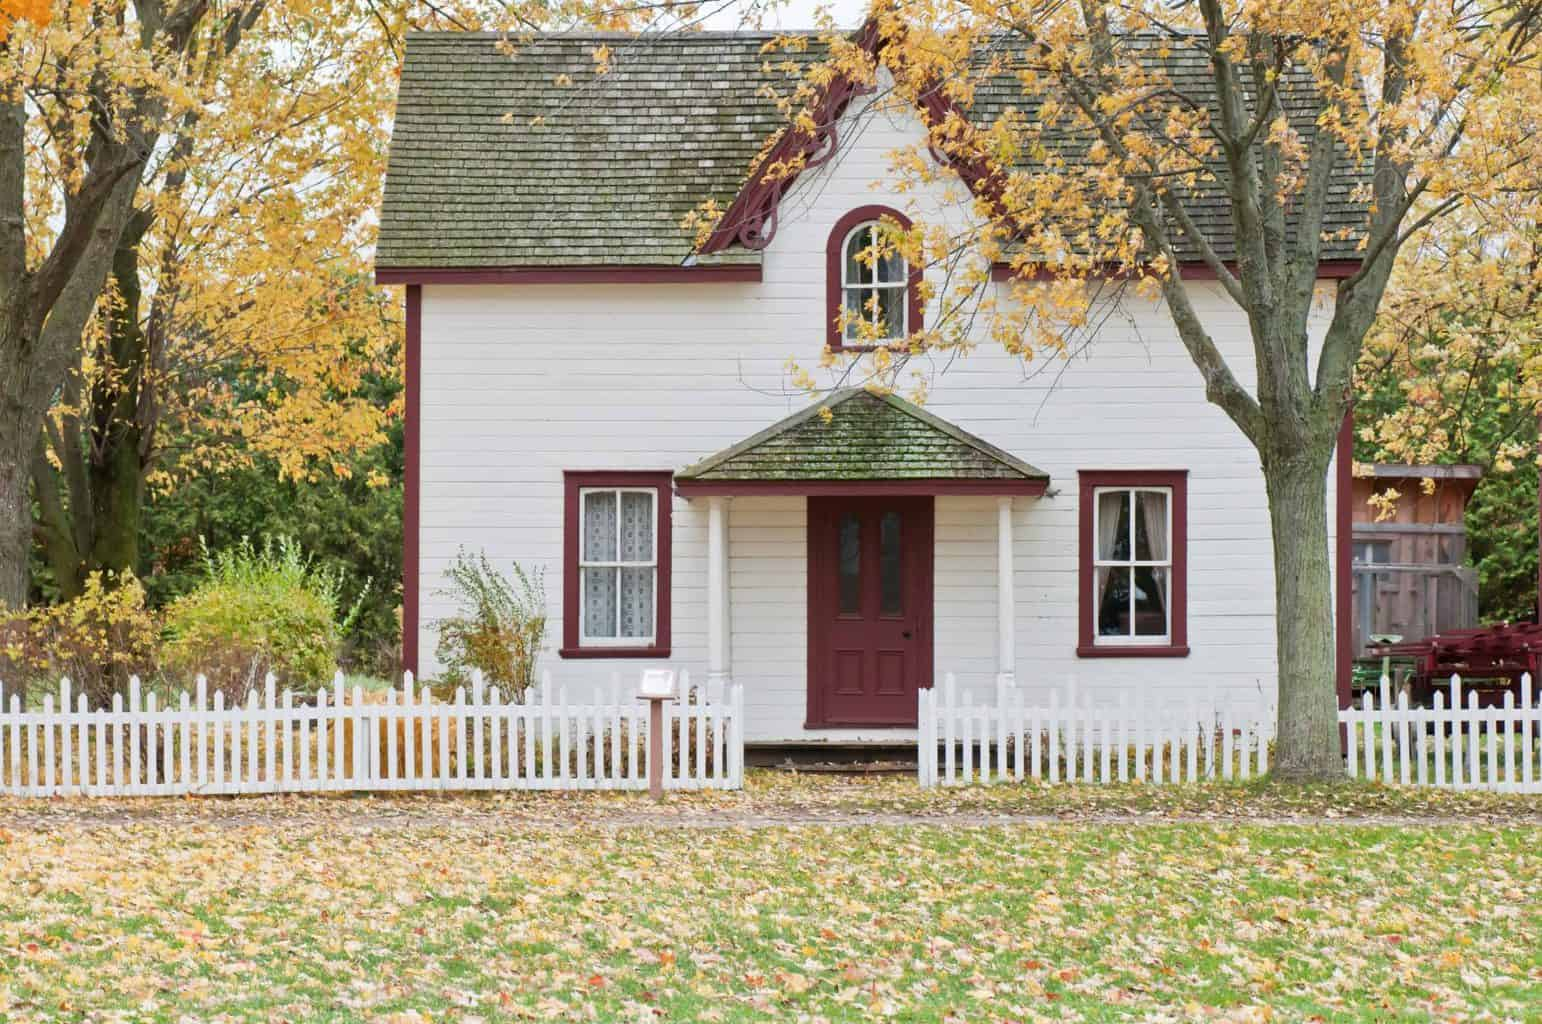 Plumbing Tips for This Autumn